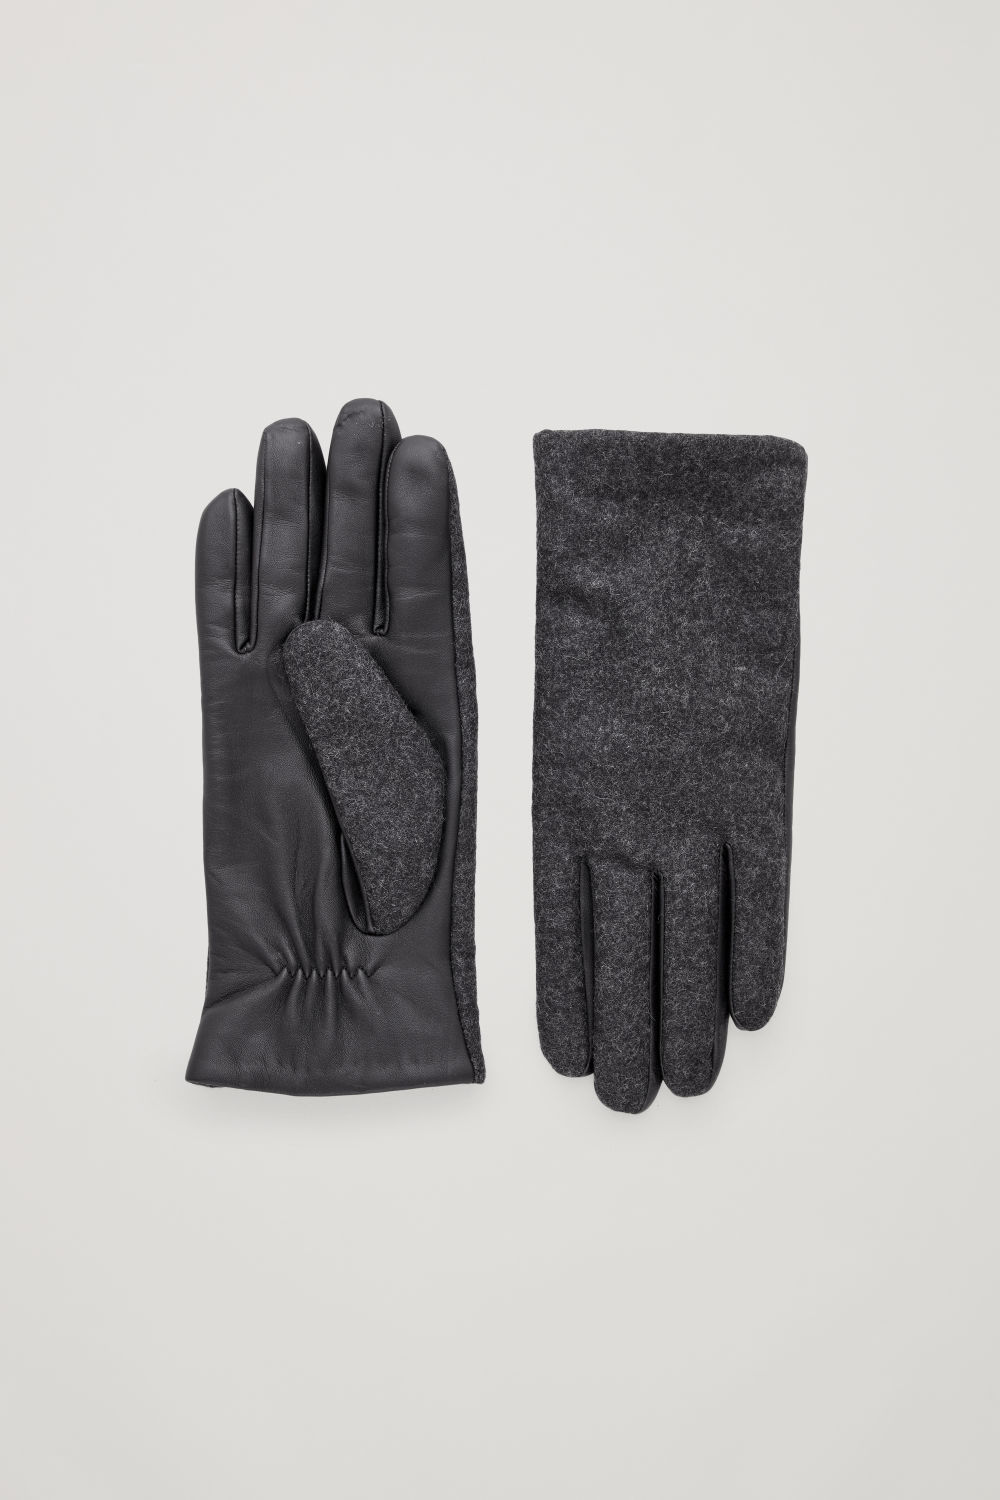 코스 COS LEATHER AND WOOL GLOVES,Dark grey melange \/ Black